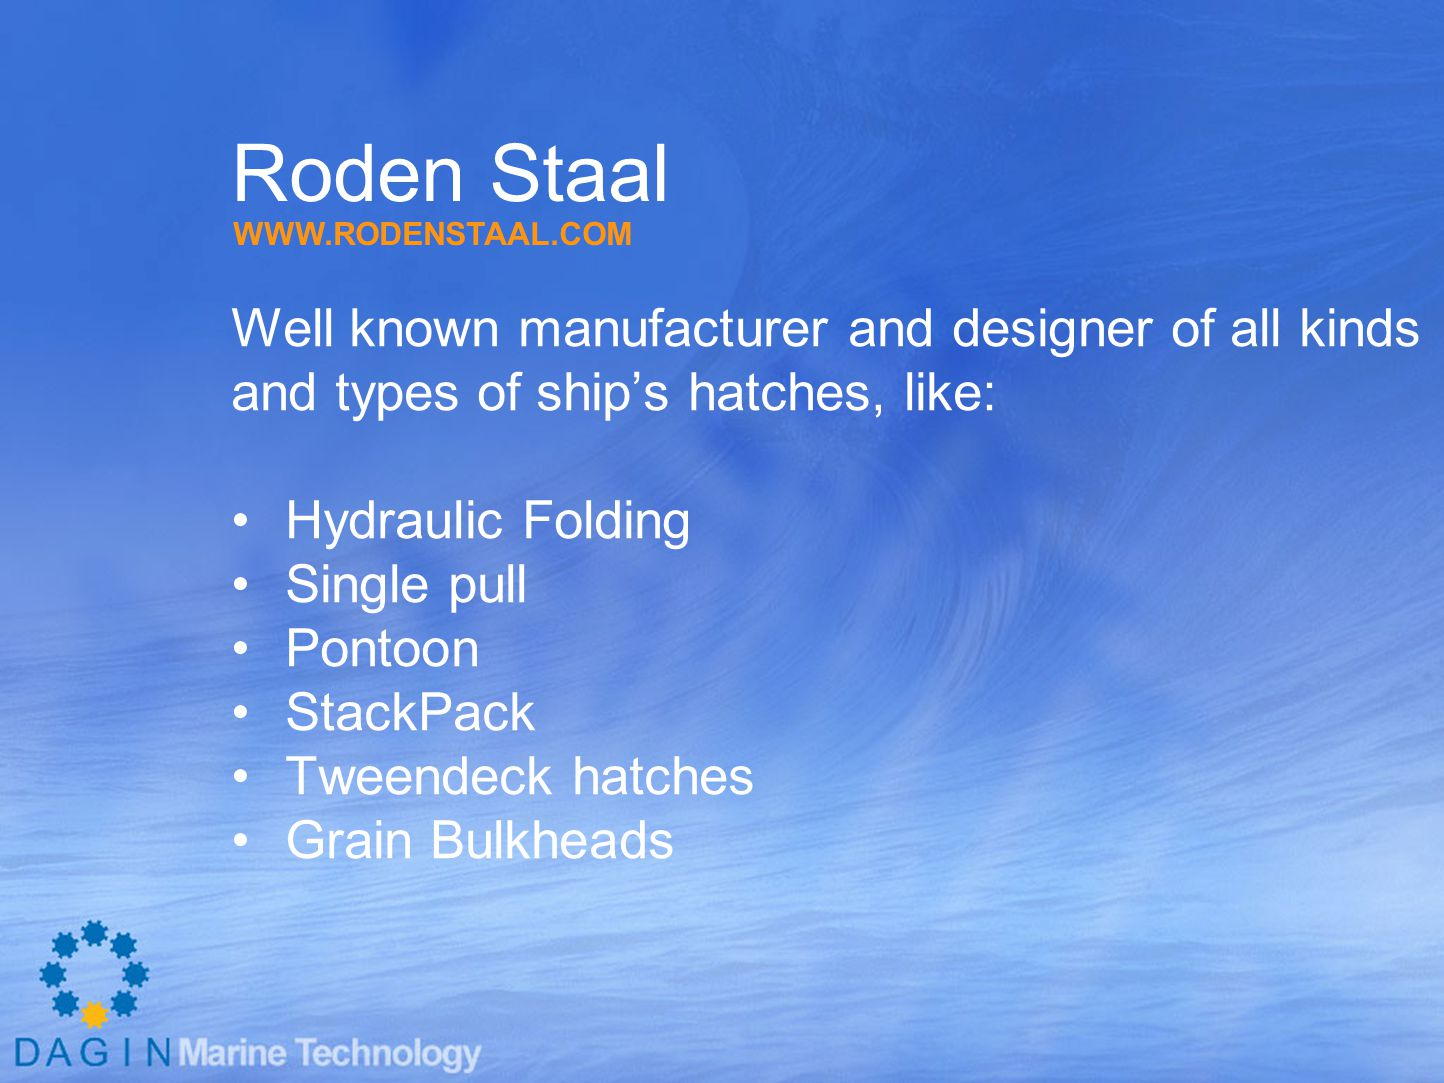 Roden Staal Well known manufacturer and designer of all kinds